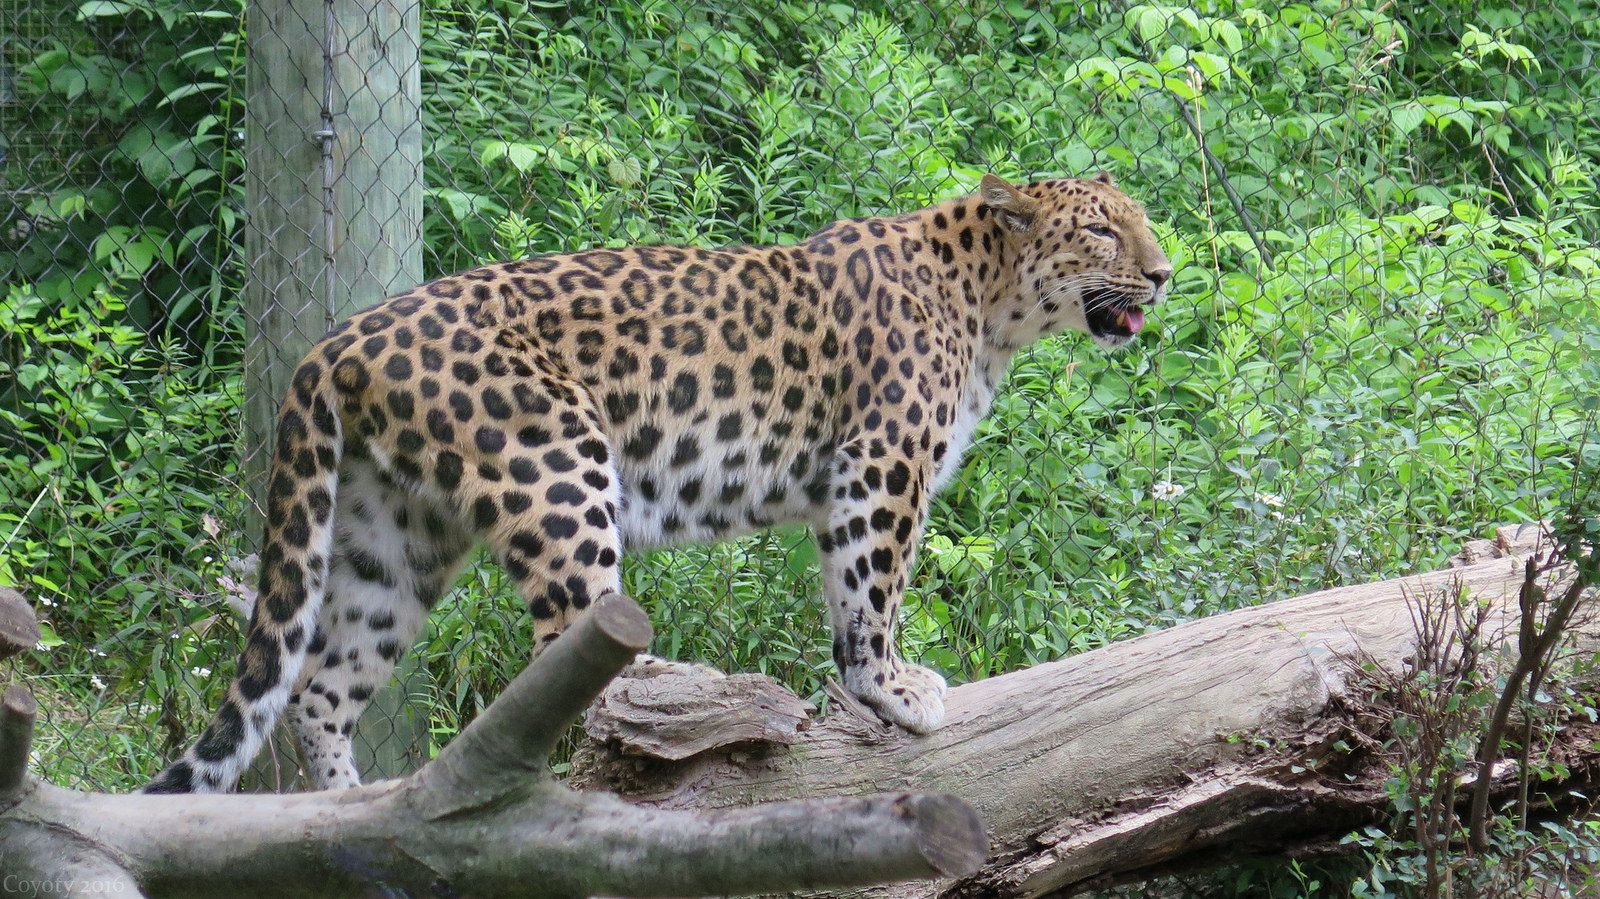 Amur Leopard Panthera Pardus Orientalis At The Pittsburgh Zoo In Pittsburgh Pa License All Rights Reserved Amur Leopard Pittsburgh Zoo Panthera Pardus